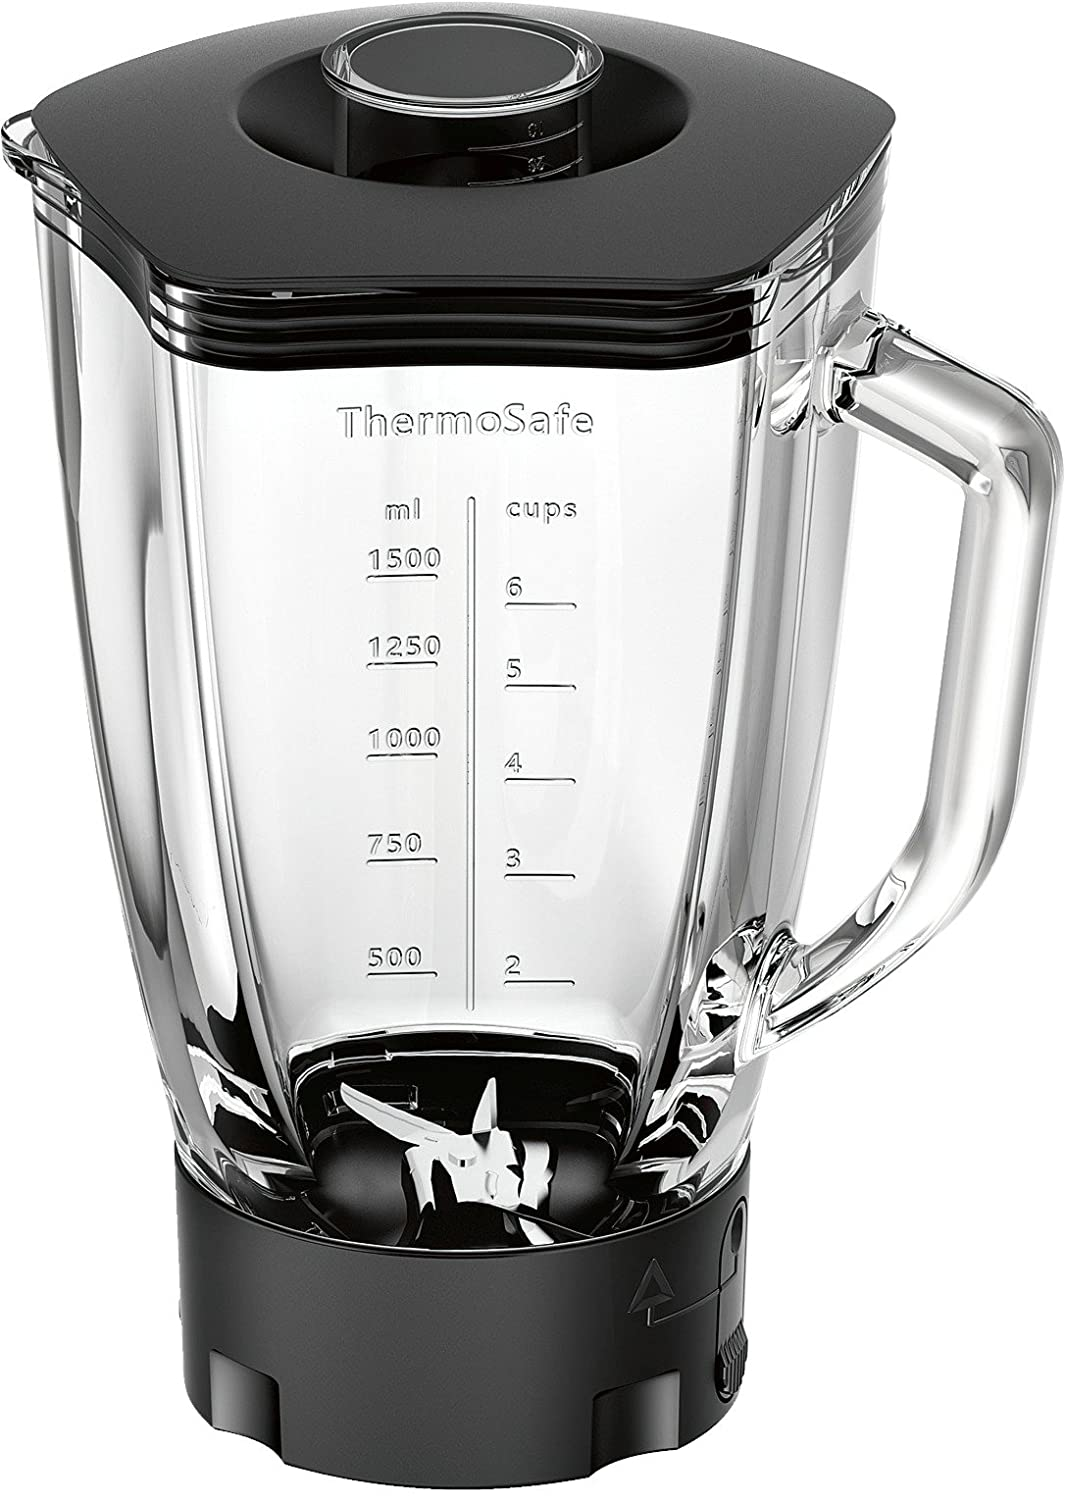 Bosch MUZ9MX1 Thermosafe Glass Blender with Stainless Steel Knife For Kitchen Optimum